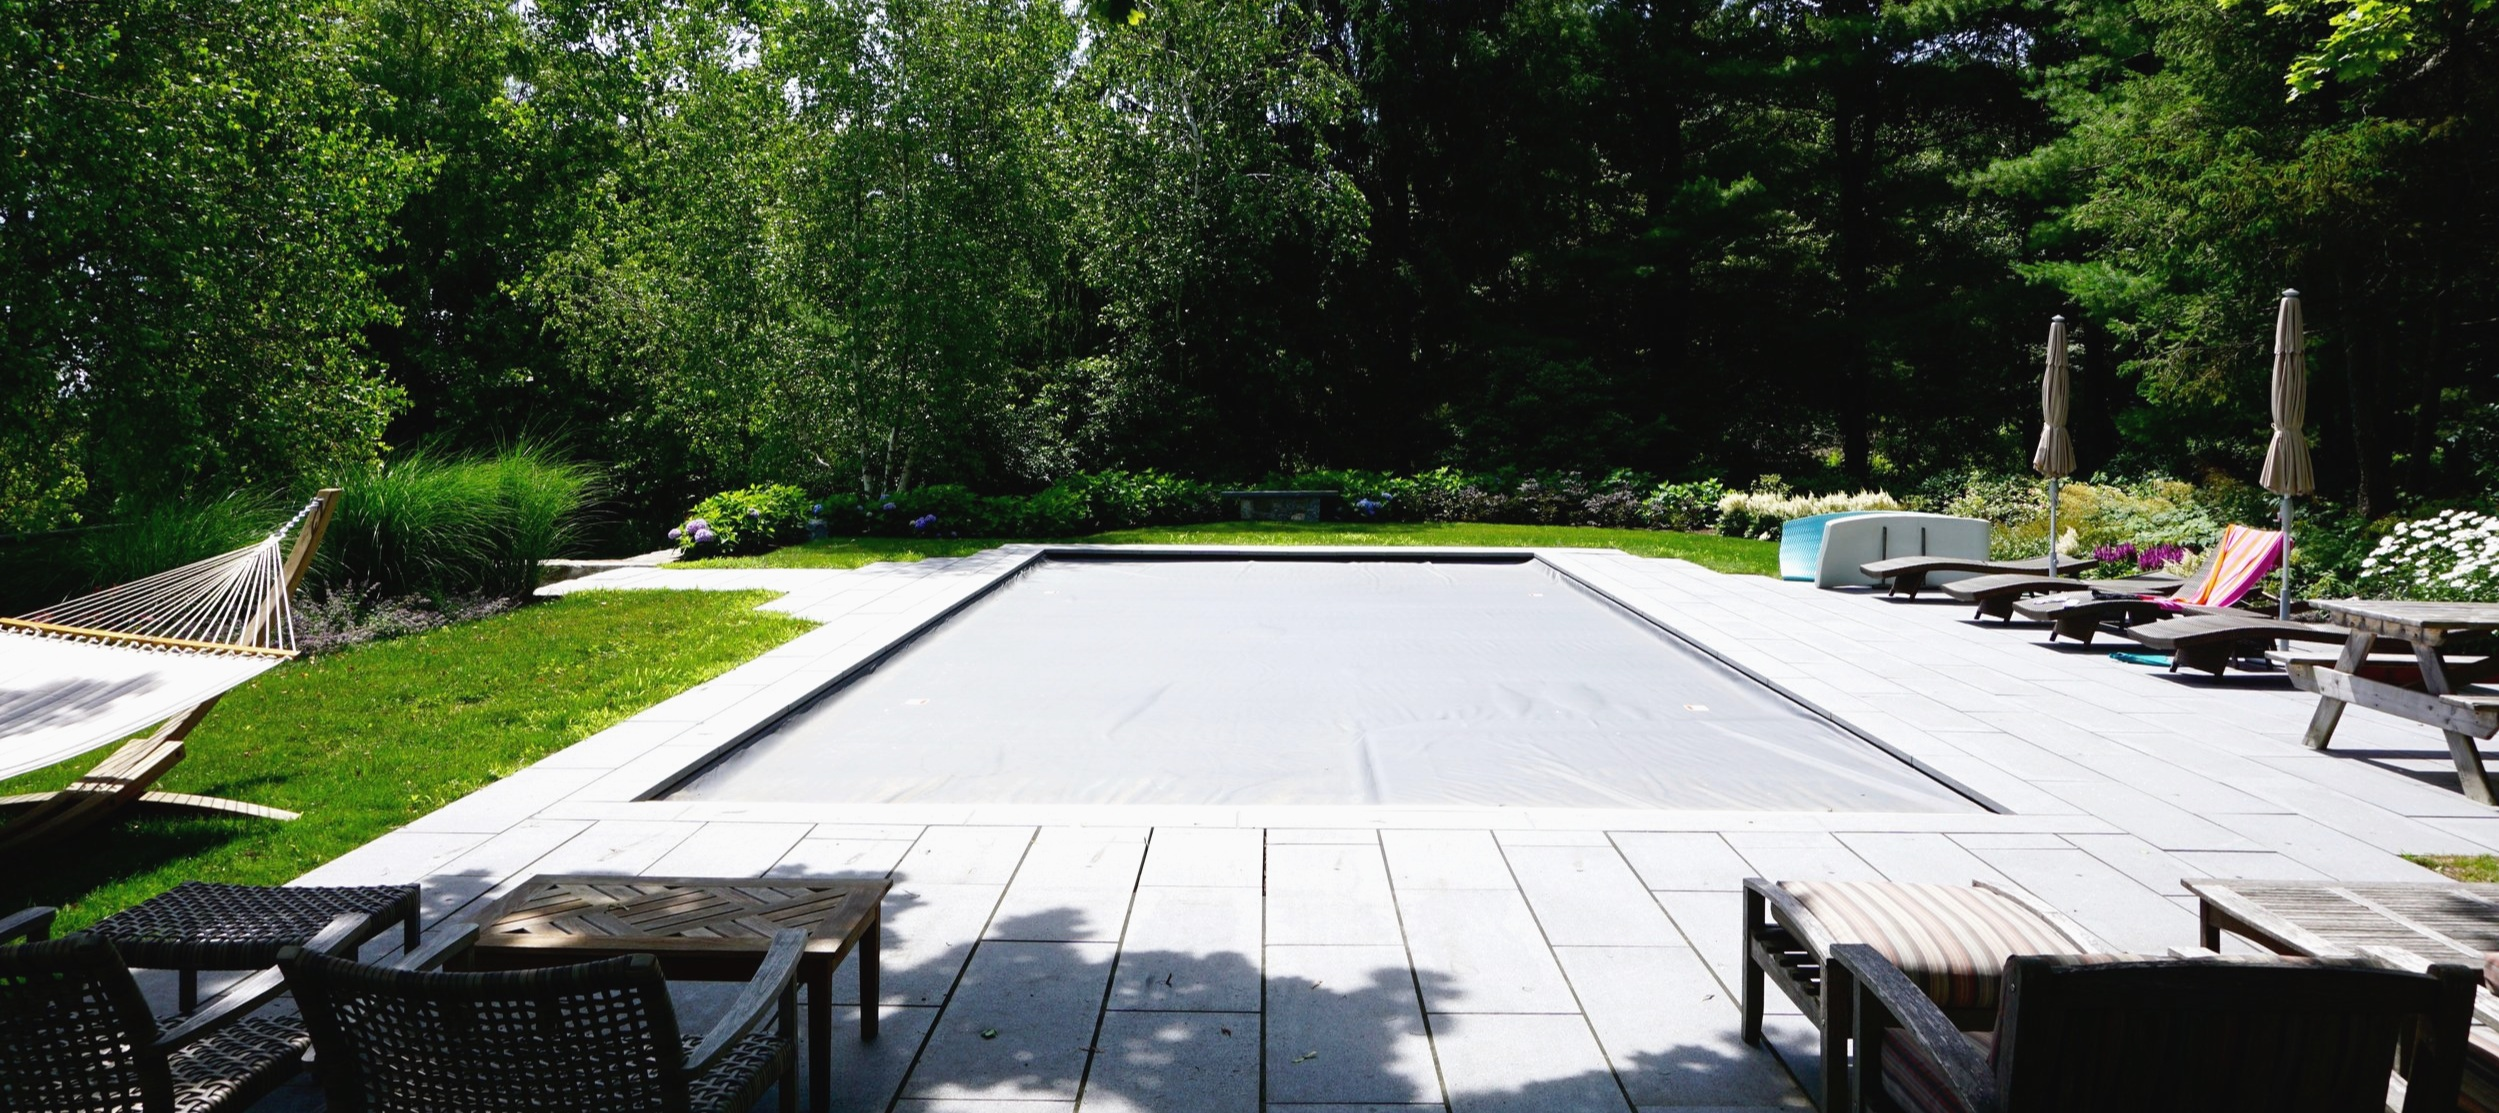 A closed Automatic Pool Cover on a pool in Litchfield, CT